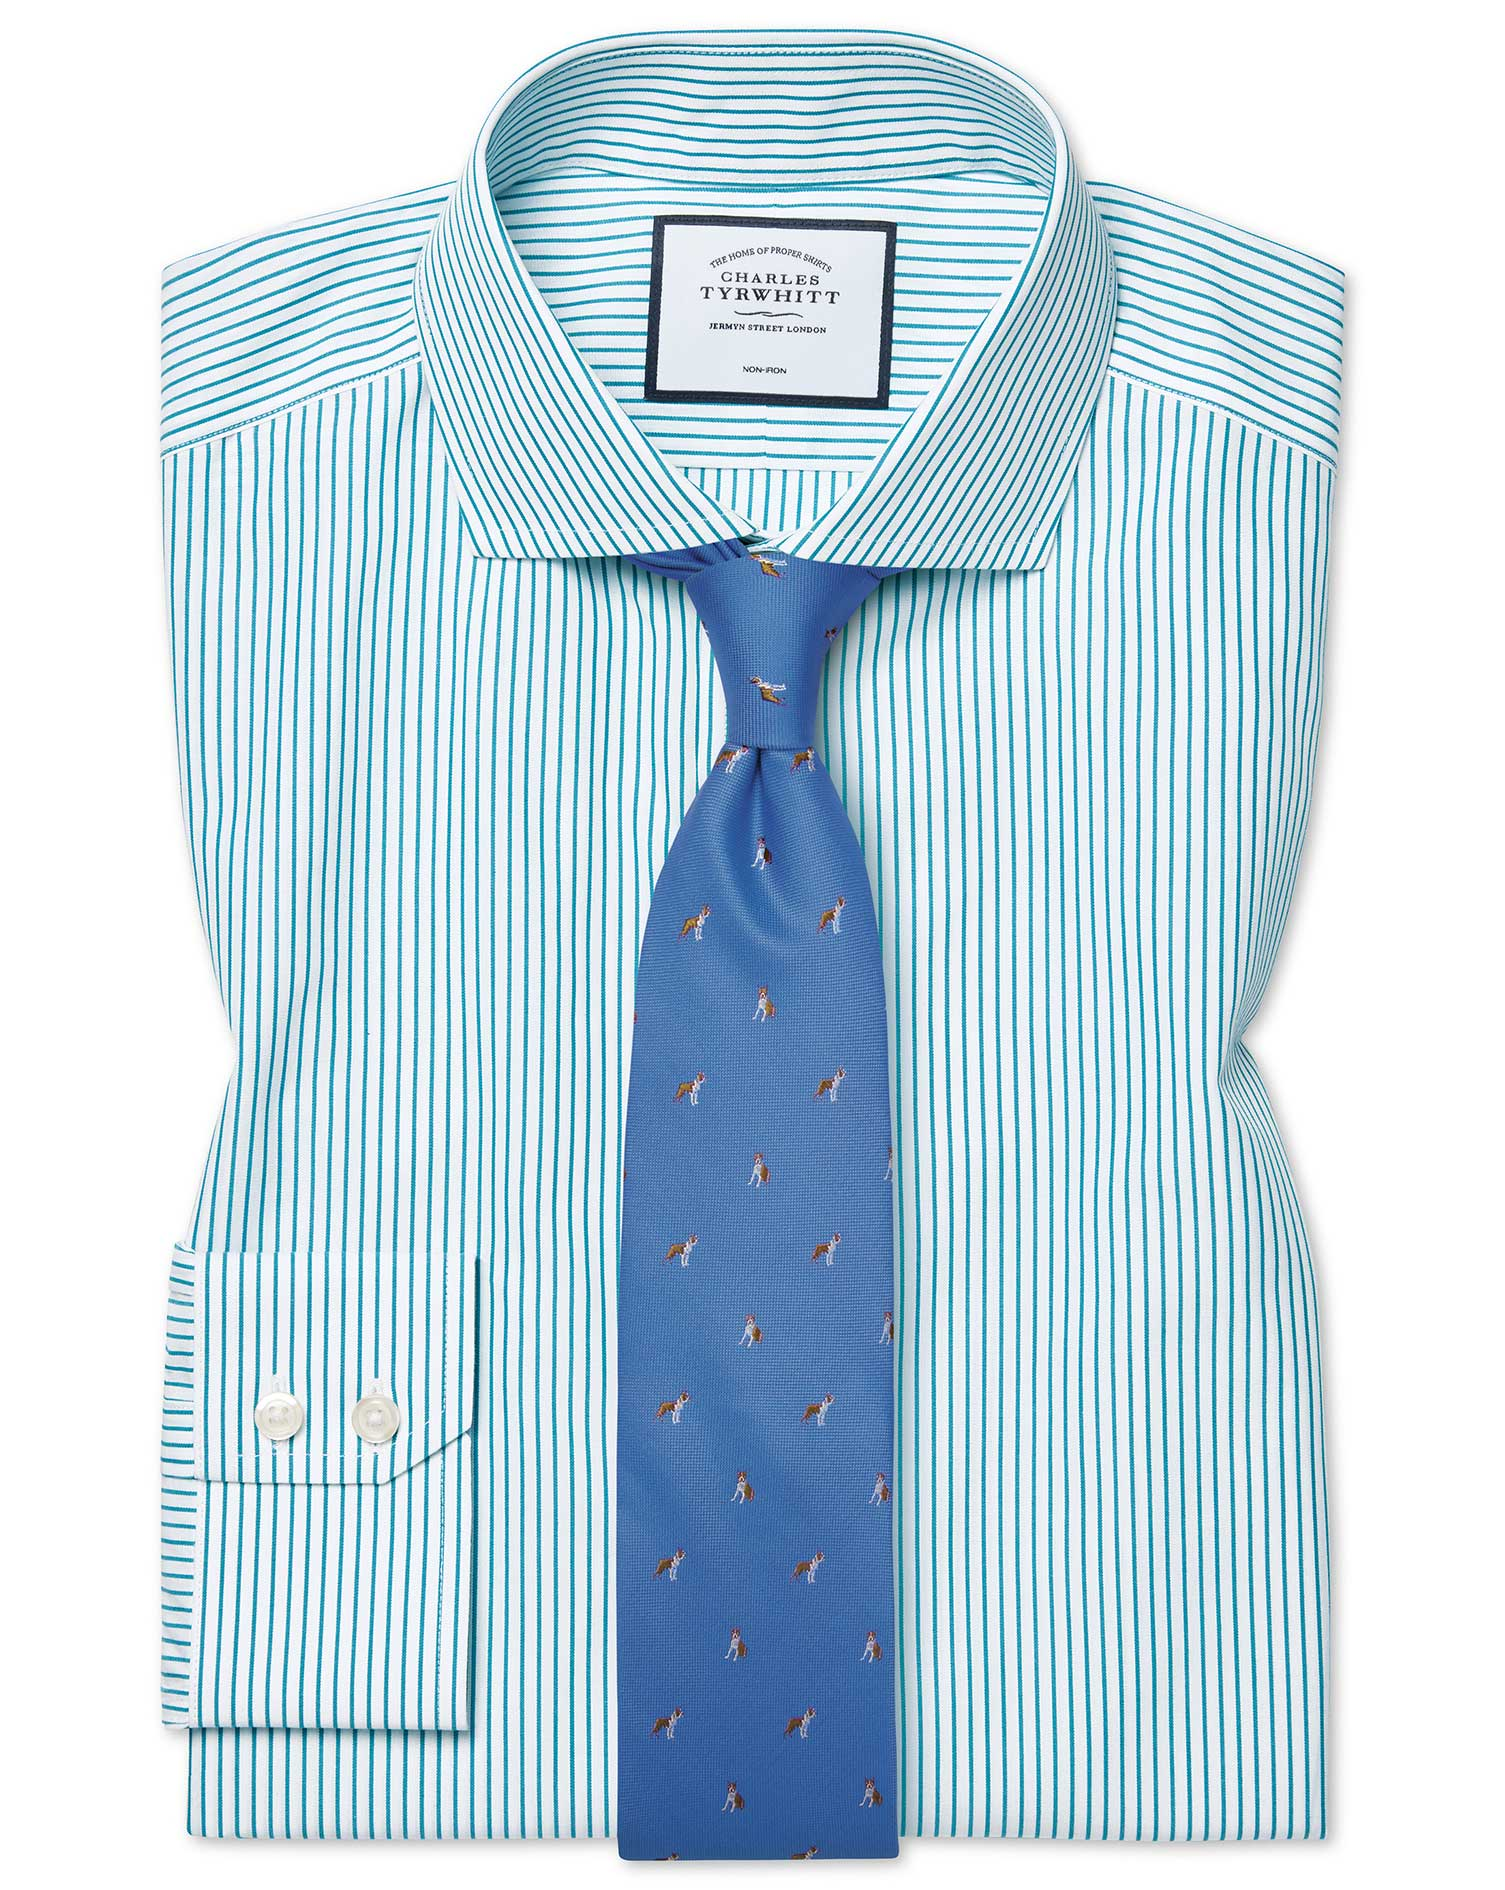 Extra Slim Fit Cutaway Non-Iron Stripe Green Cotton Formal Shirt Double Cuff Size 15.5/33 by Charles